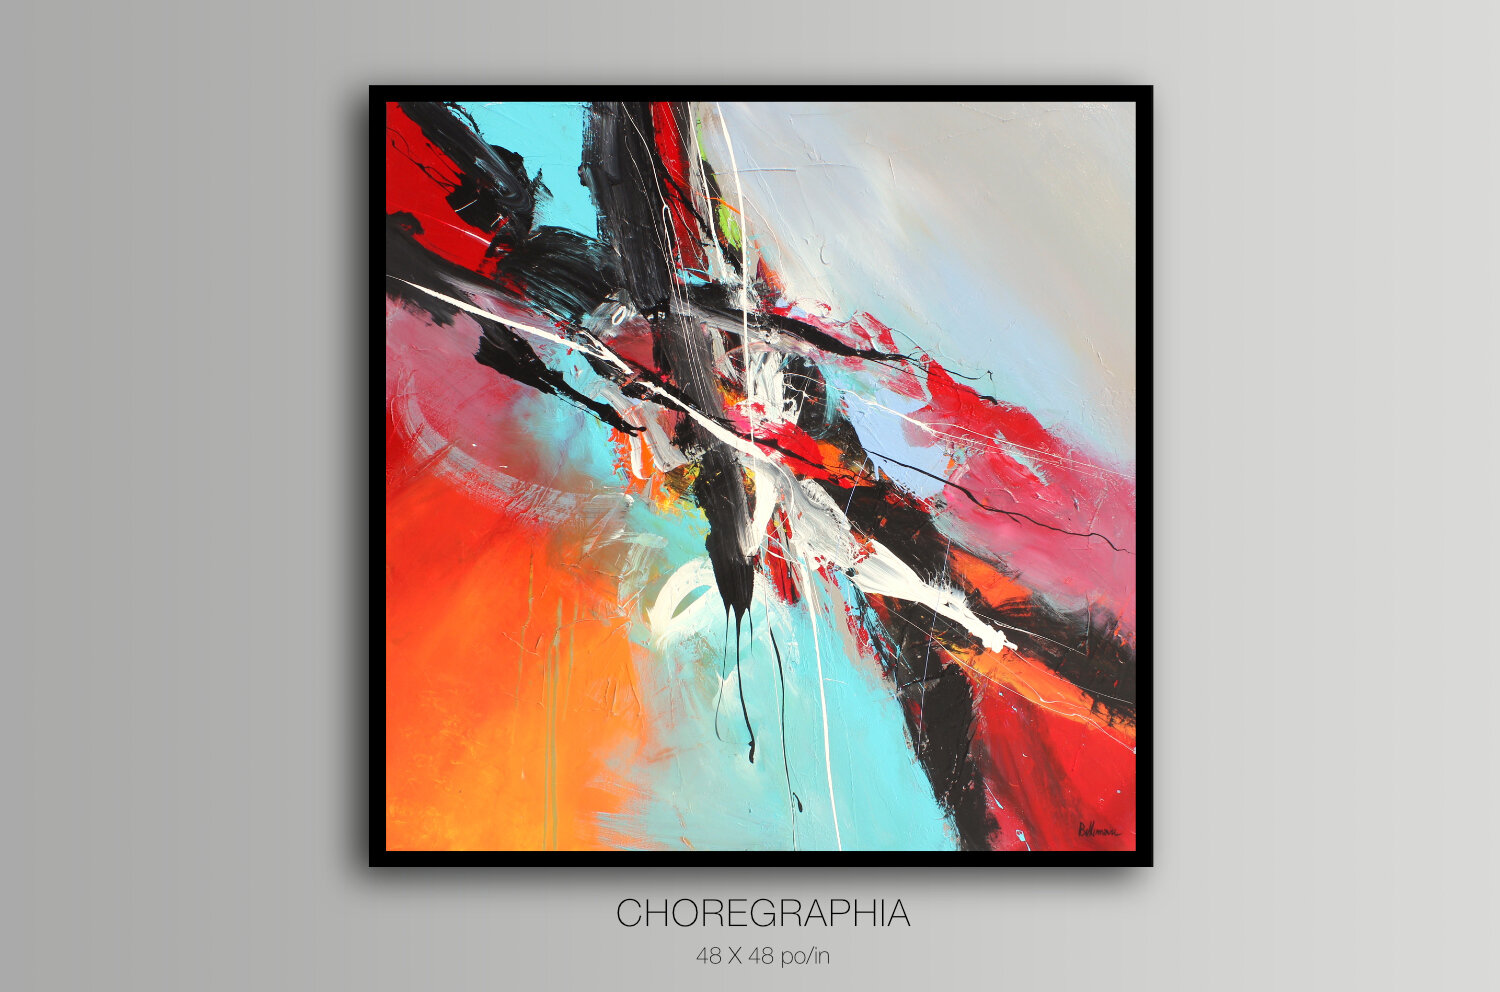 Choregraphia - Rythmik Collection